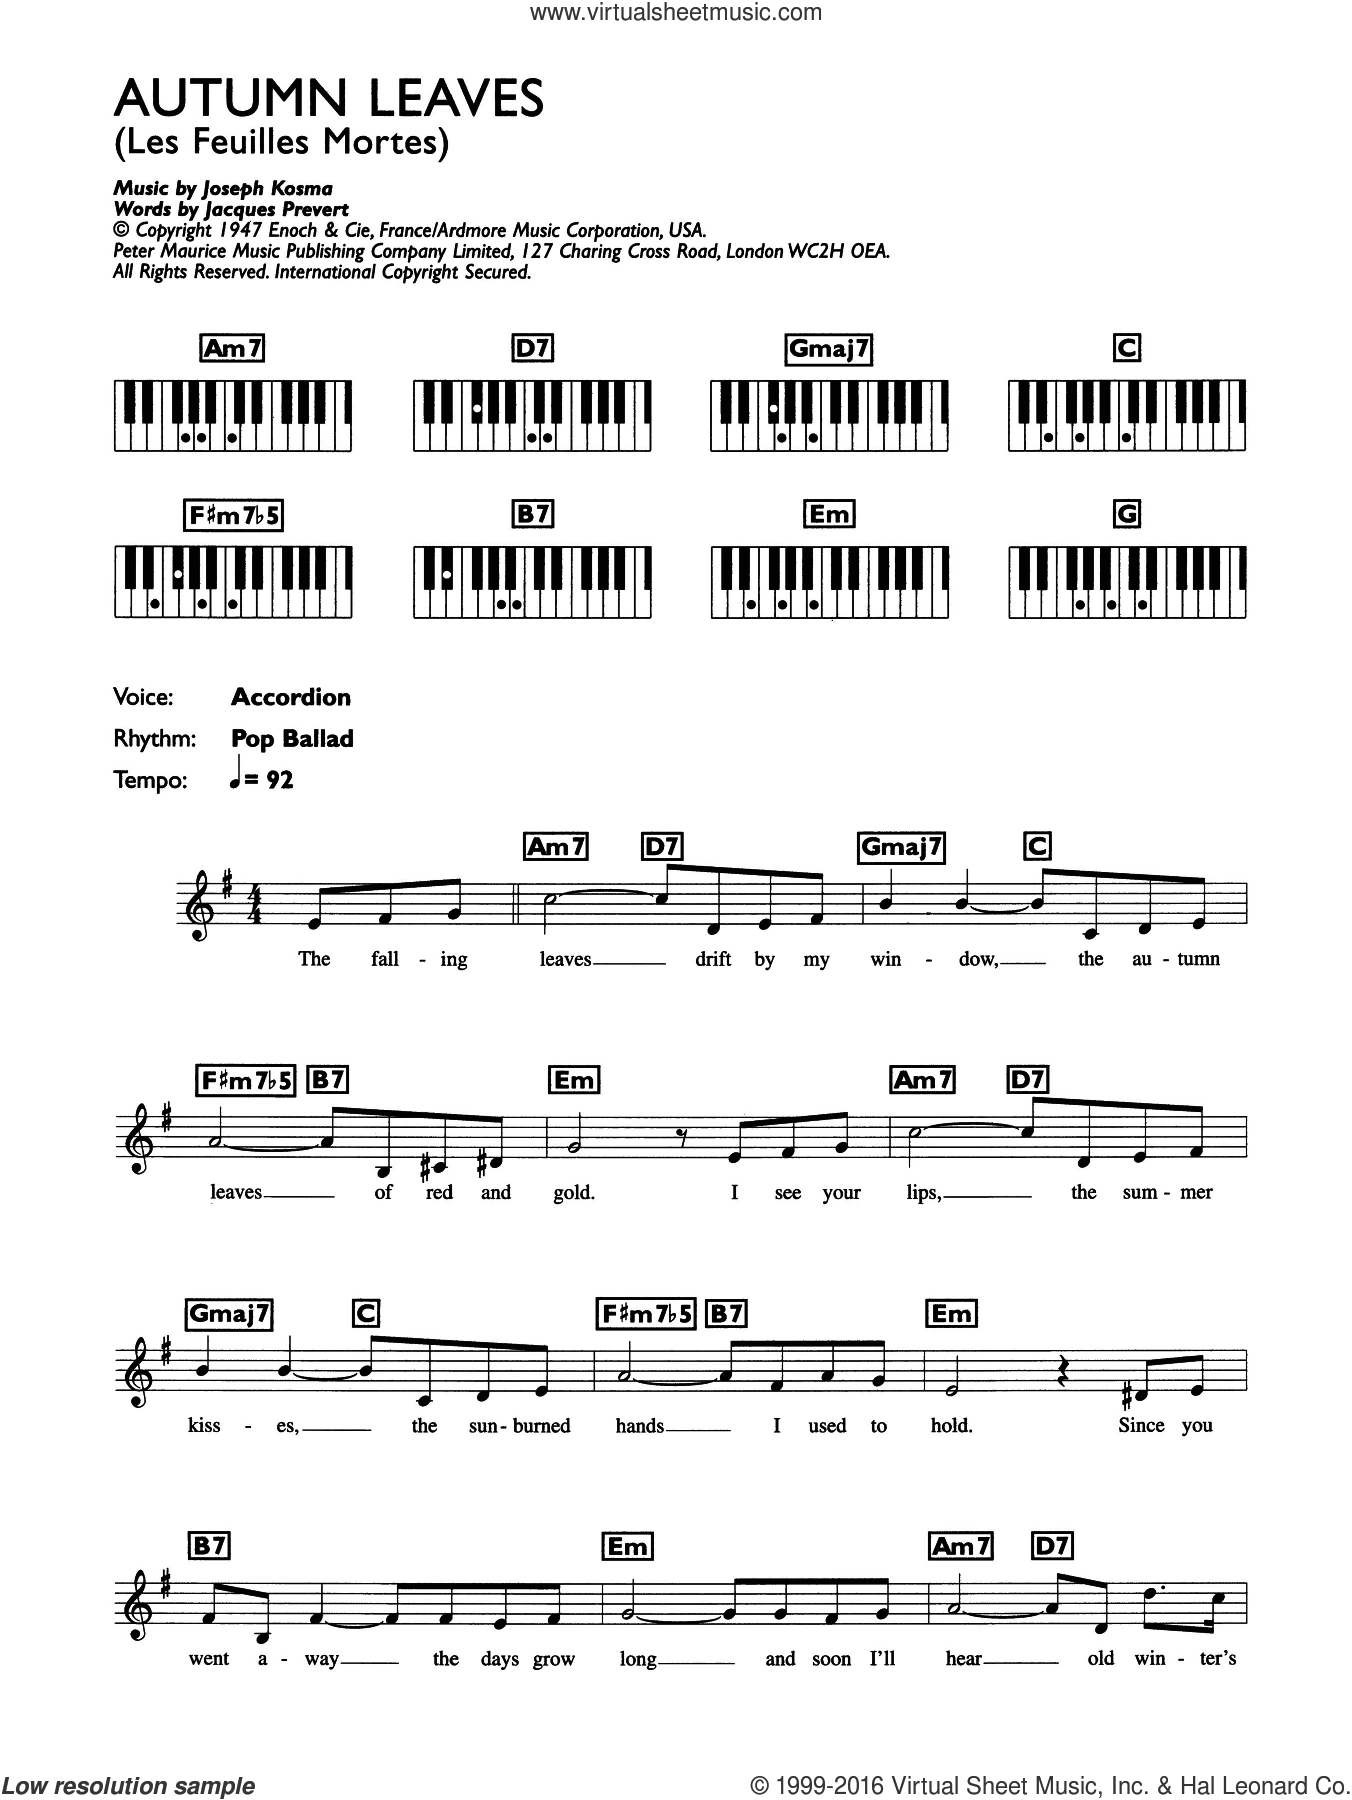 Autumn Leaves (Les Feuilles Mortes) sheet music for piano solo (chords, lyrics, melody) by Joseph Kosma